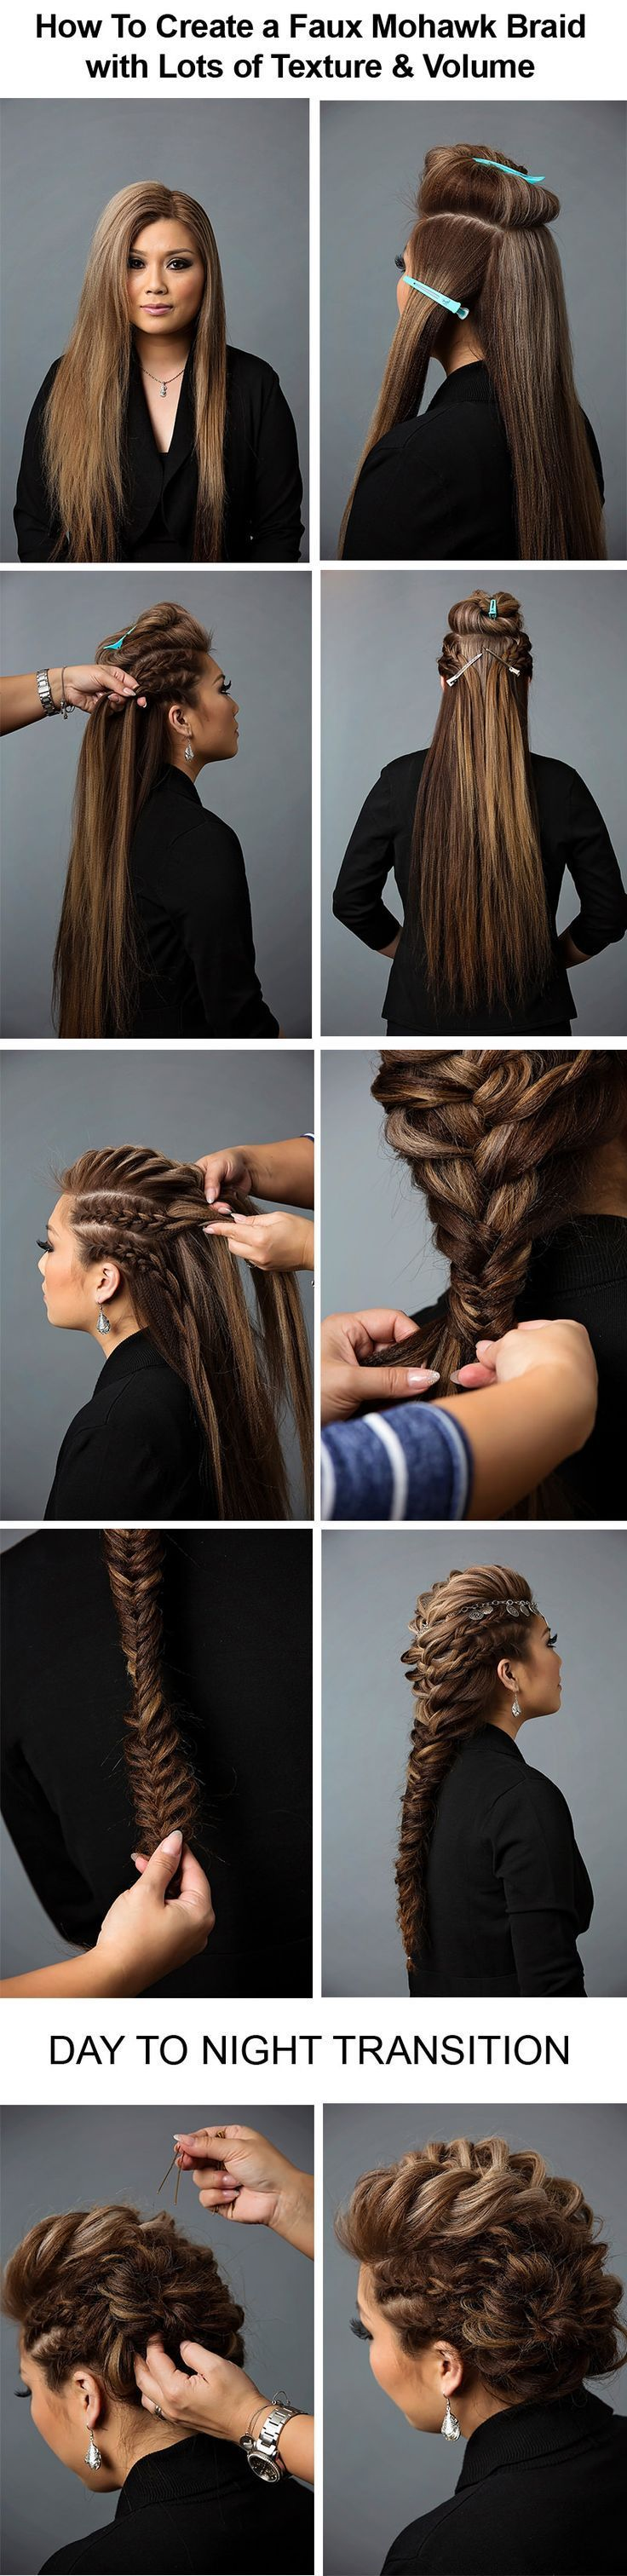 752 best Hair tutorials and styling tips tricks images on Pinterest